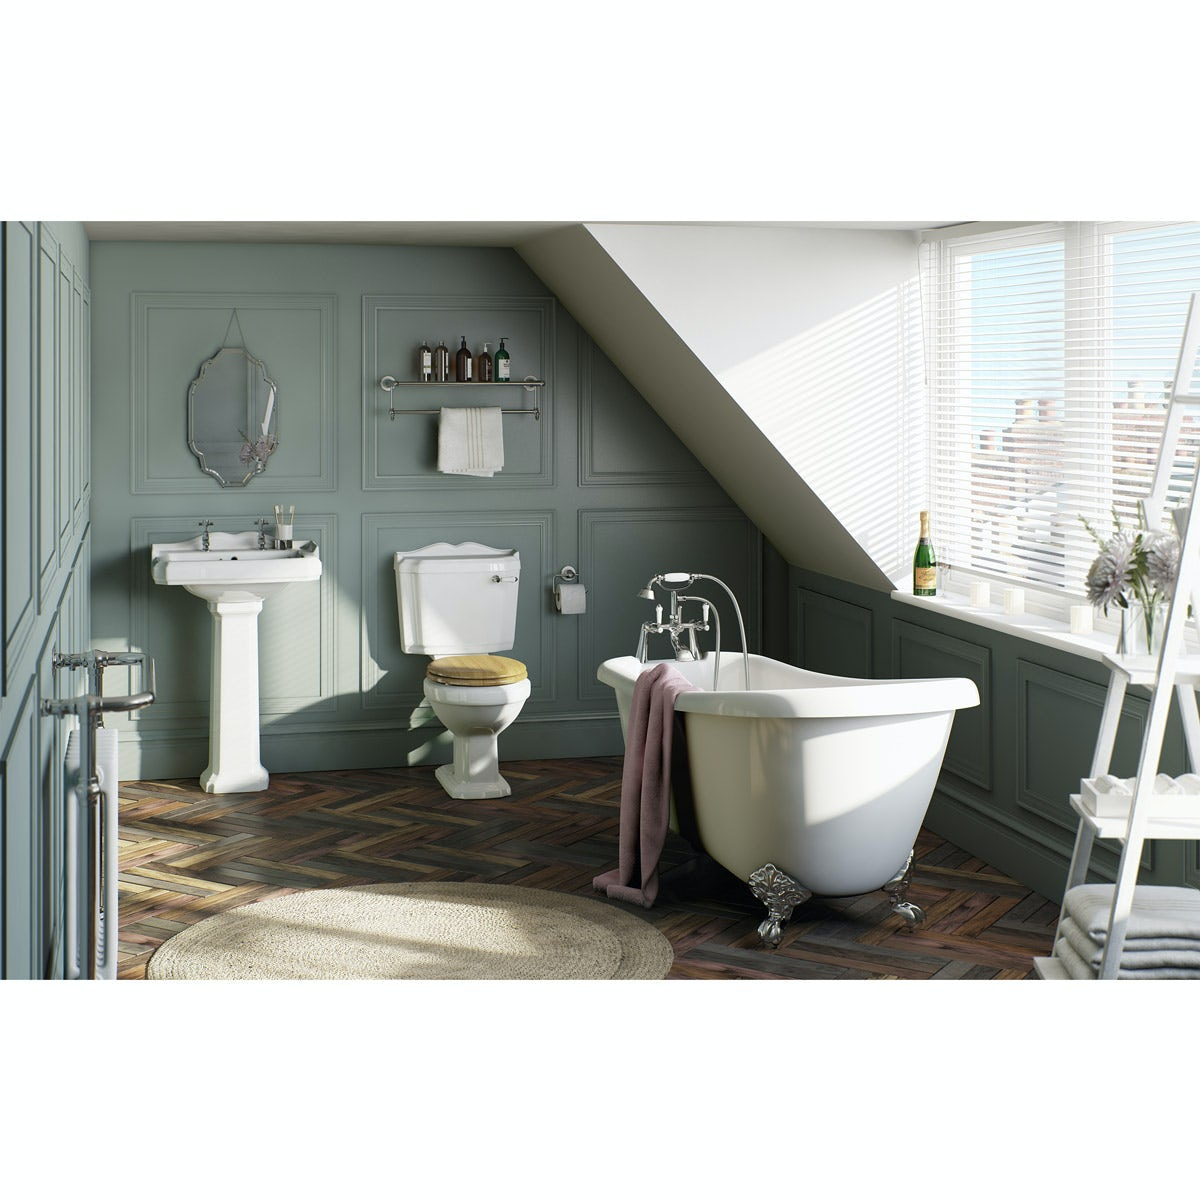 Winchester Bathroom Set with Slipper Bath Suite